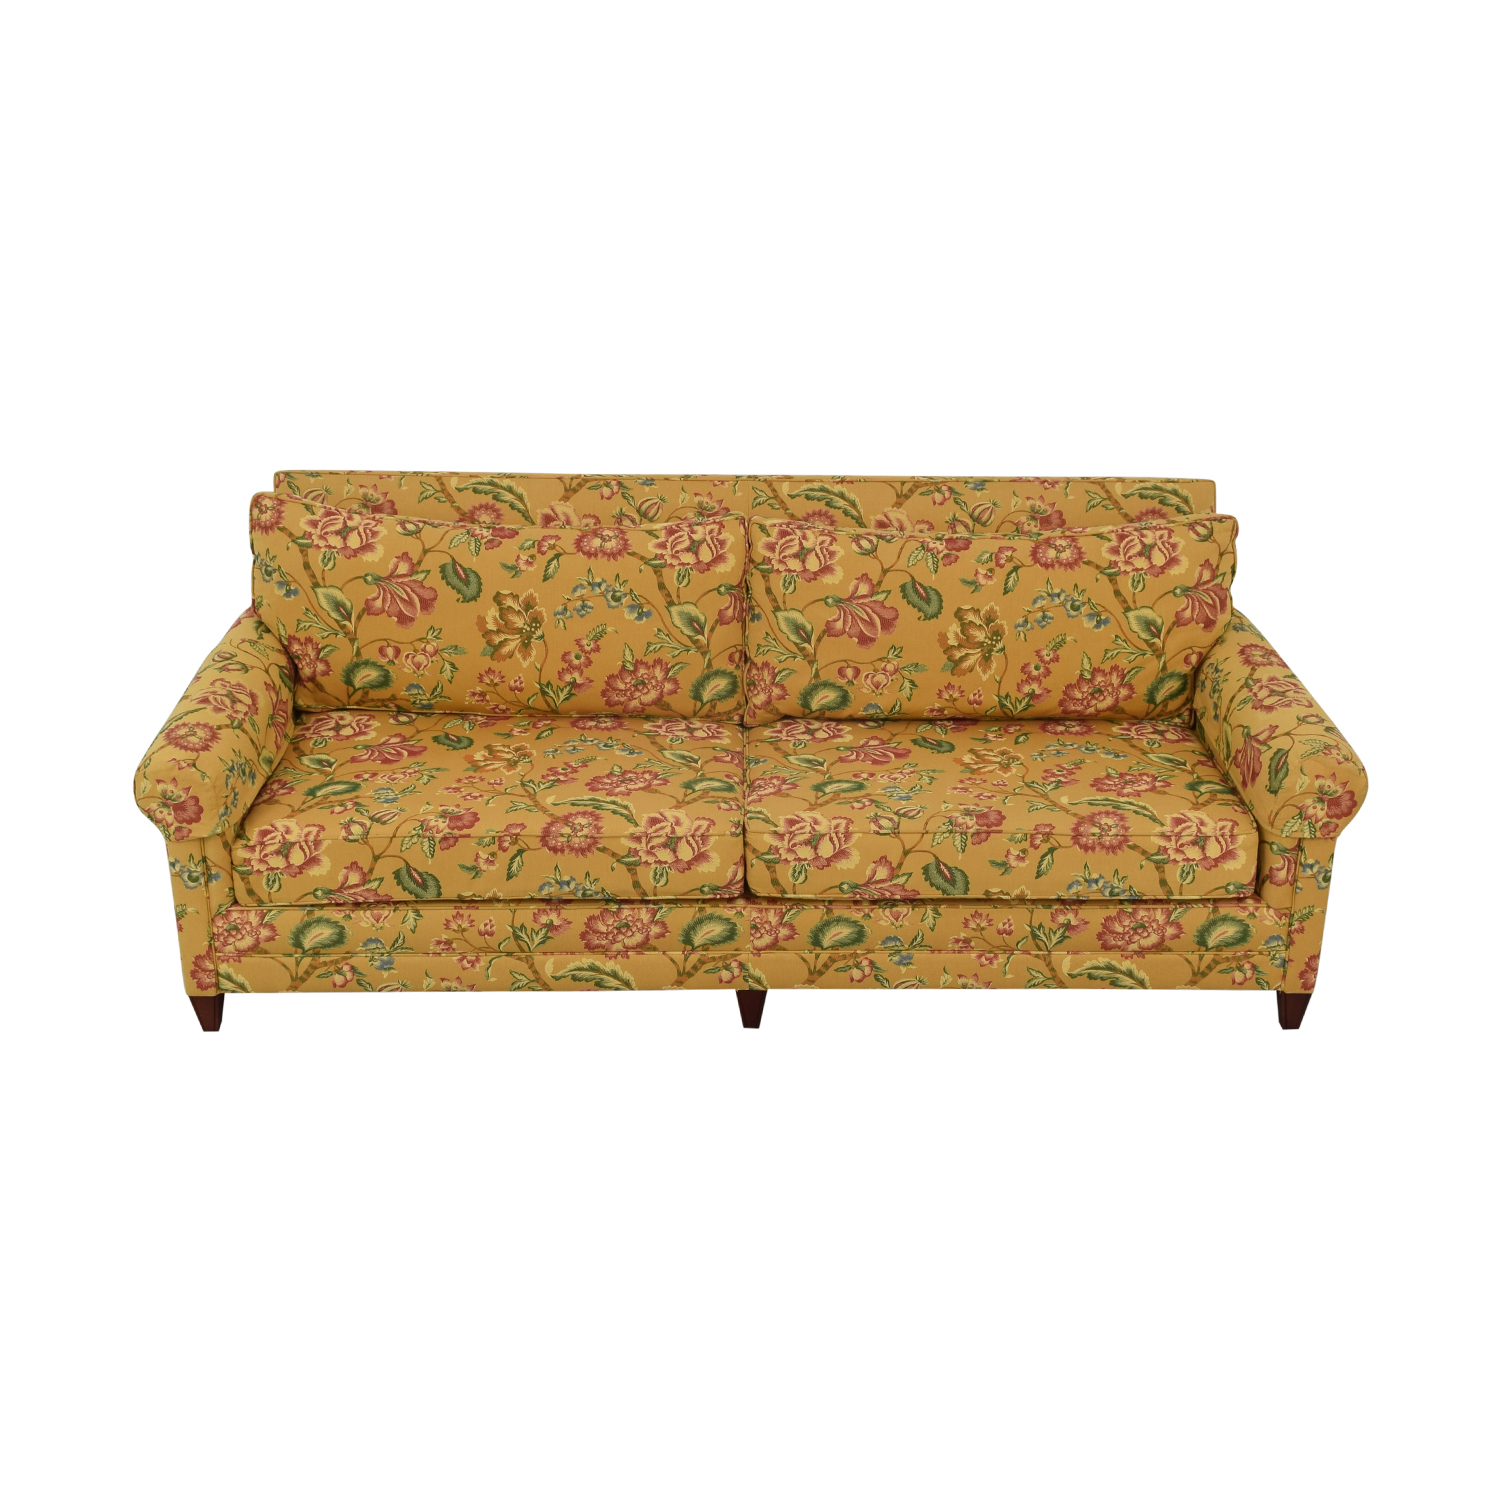 Ralph Lauren Home Sofa with Pierre Frey Fabric / Sofas